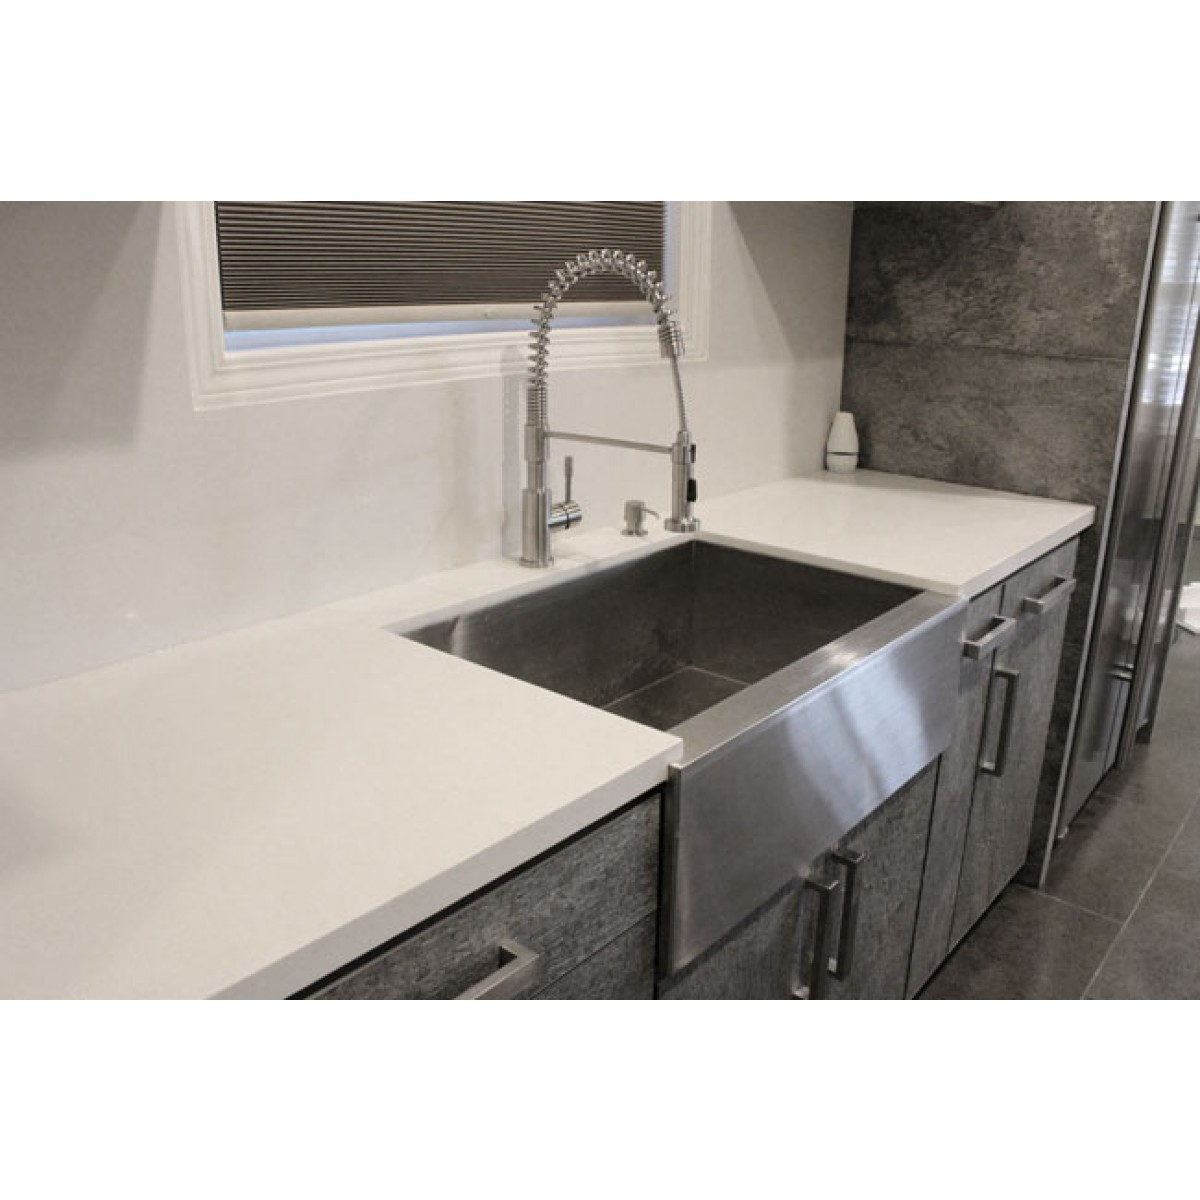 stainless steel farmhouse kitchen sink ikea designs 33 inch flat front apron